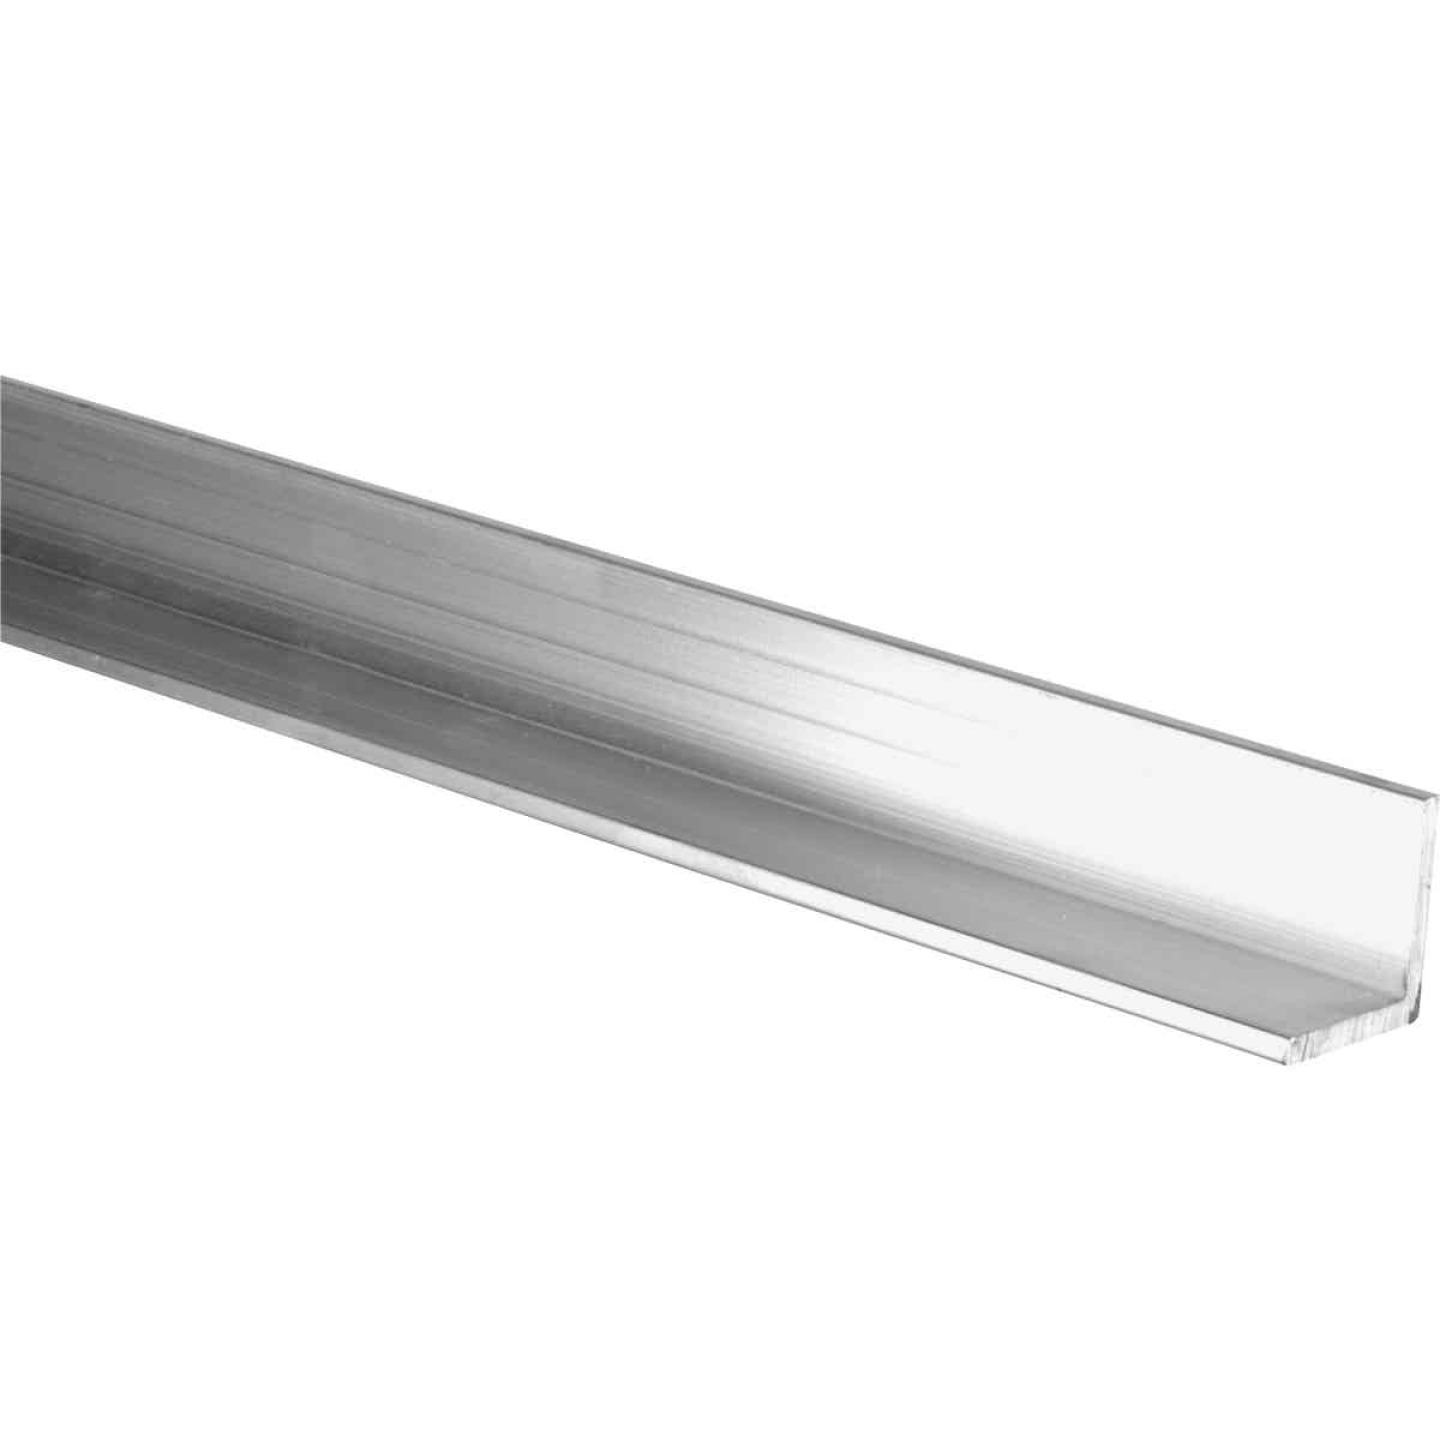 HILLMAN Steelworks Mill 1 In. x 4 Ft., 1/8 In. Aluminum Solid Angle Image 1